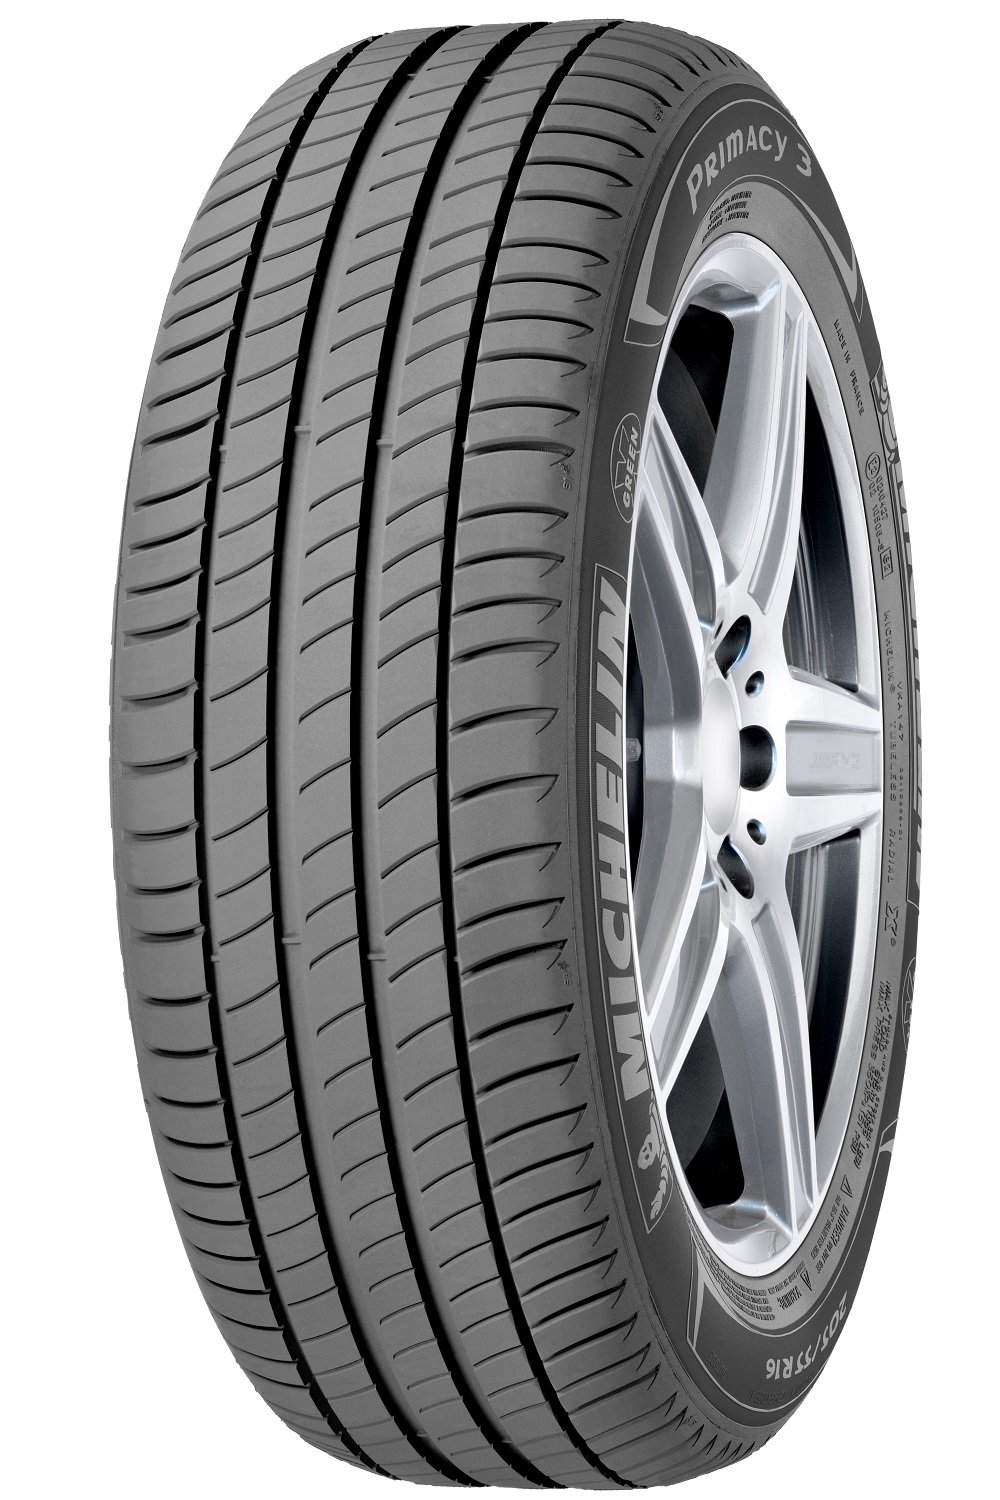 Pneu MICHELIN PRIMACY 3 225/45R17 94 W